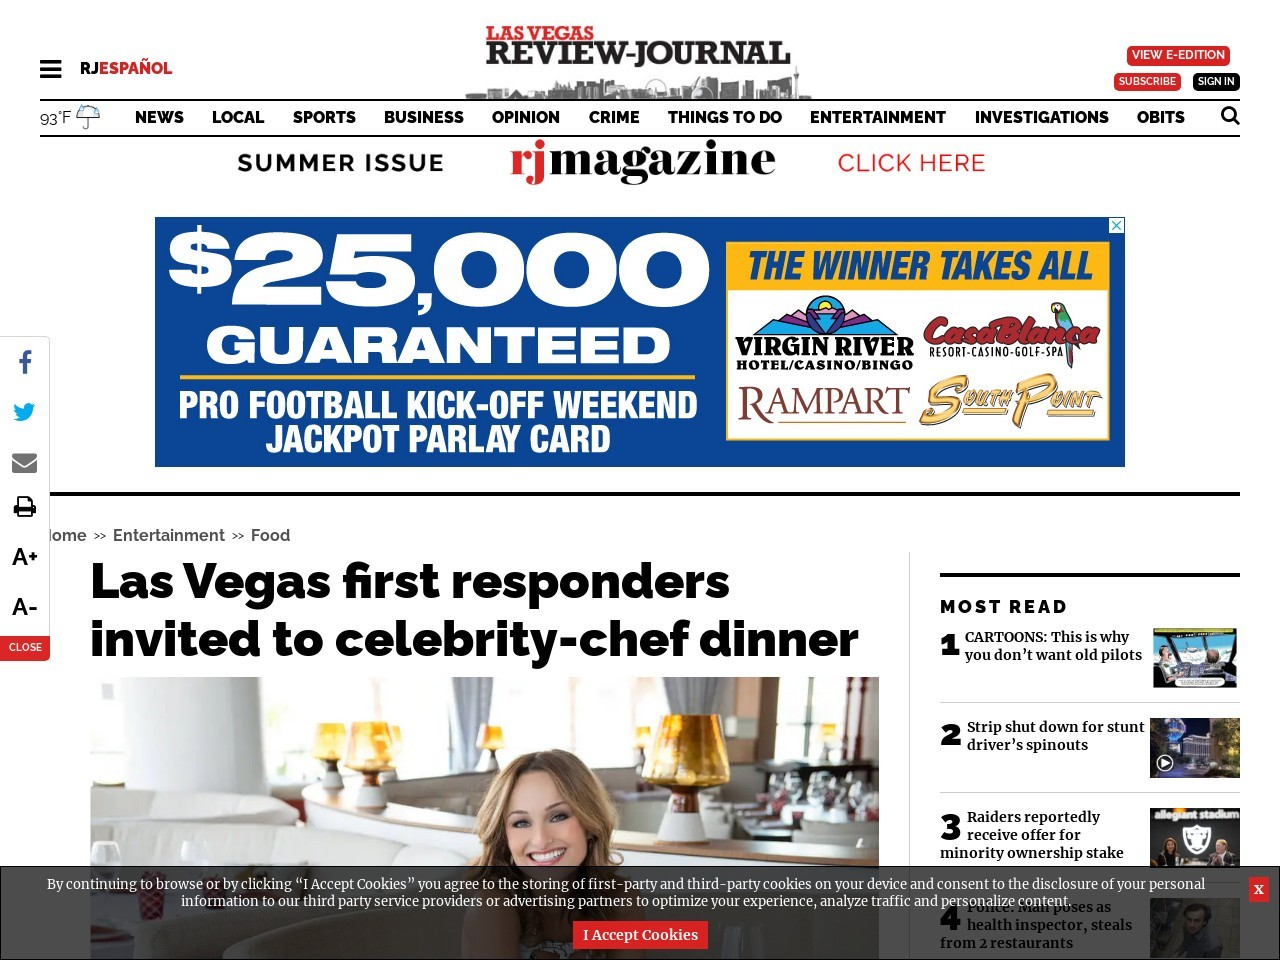 Las Vegas first responders invited to celebrity-chef dinner